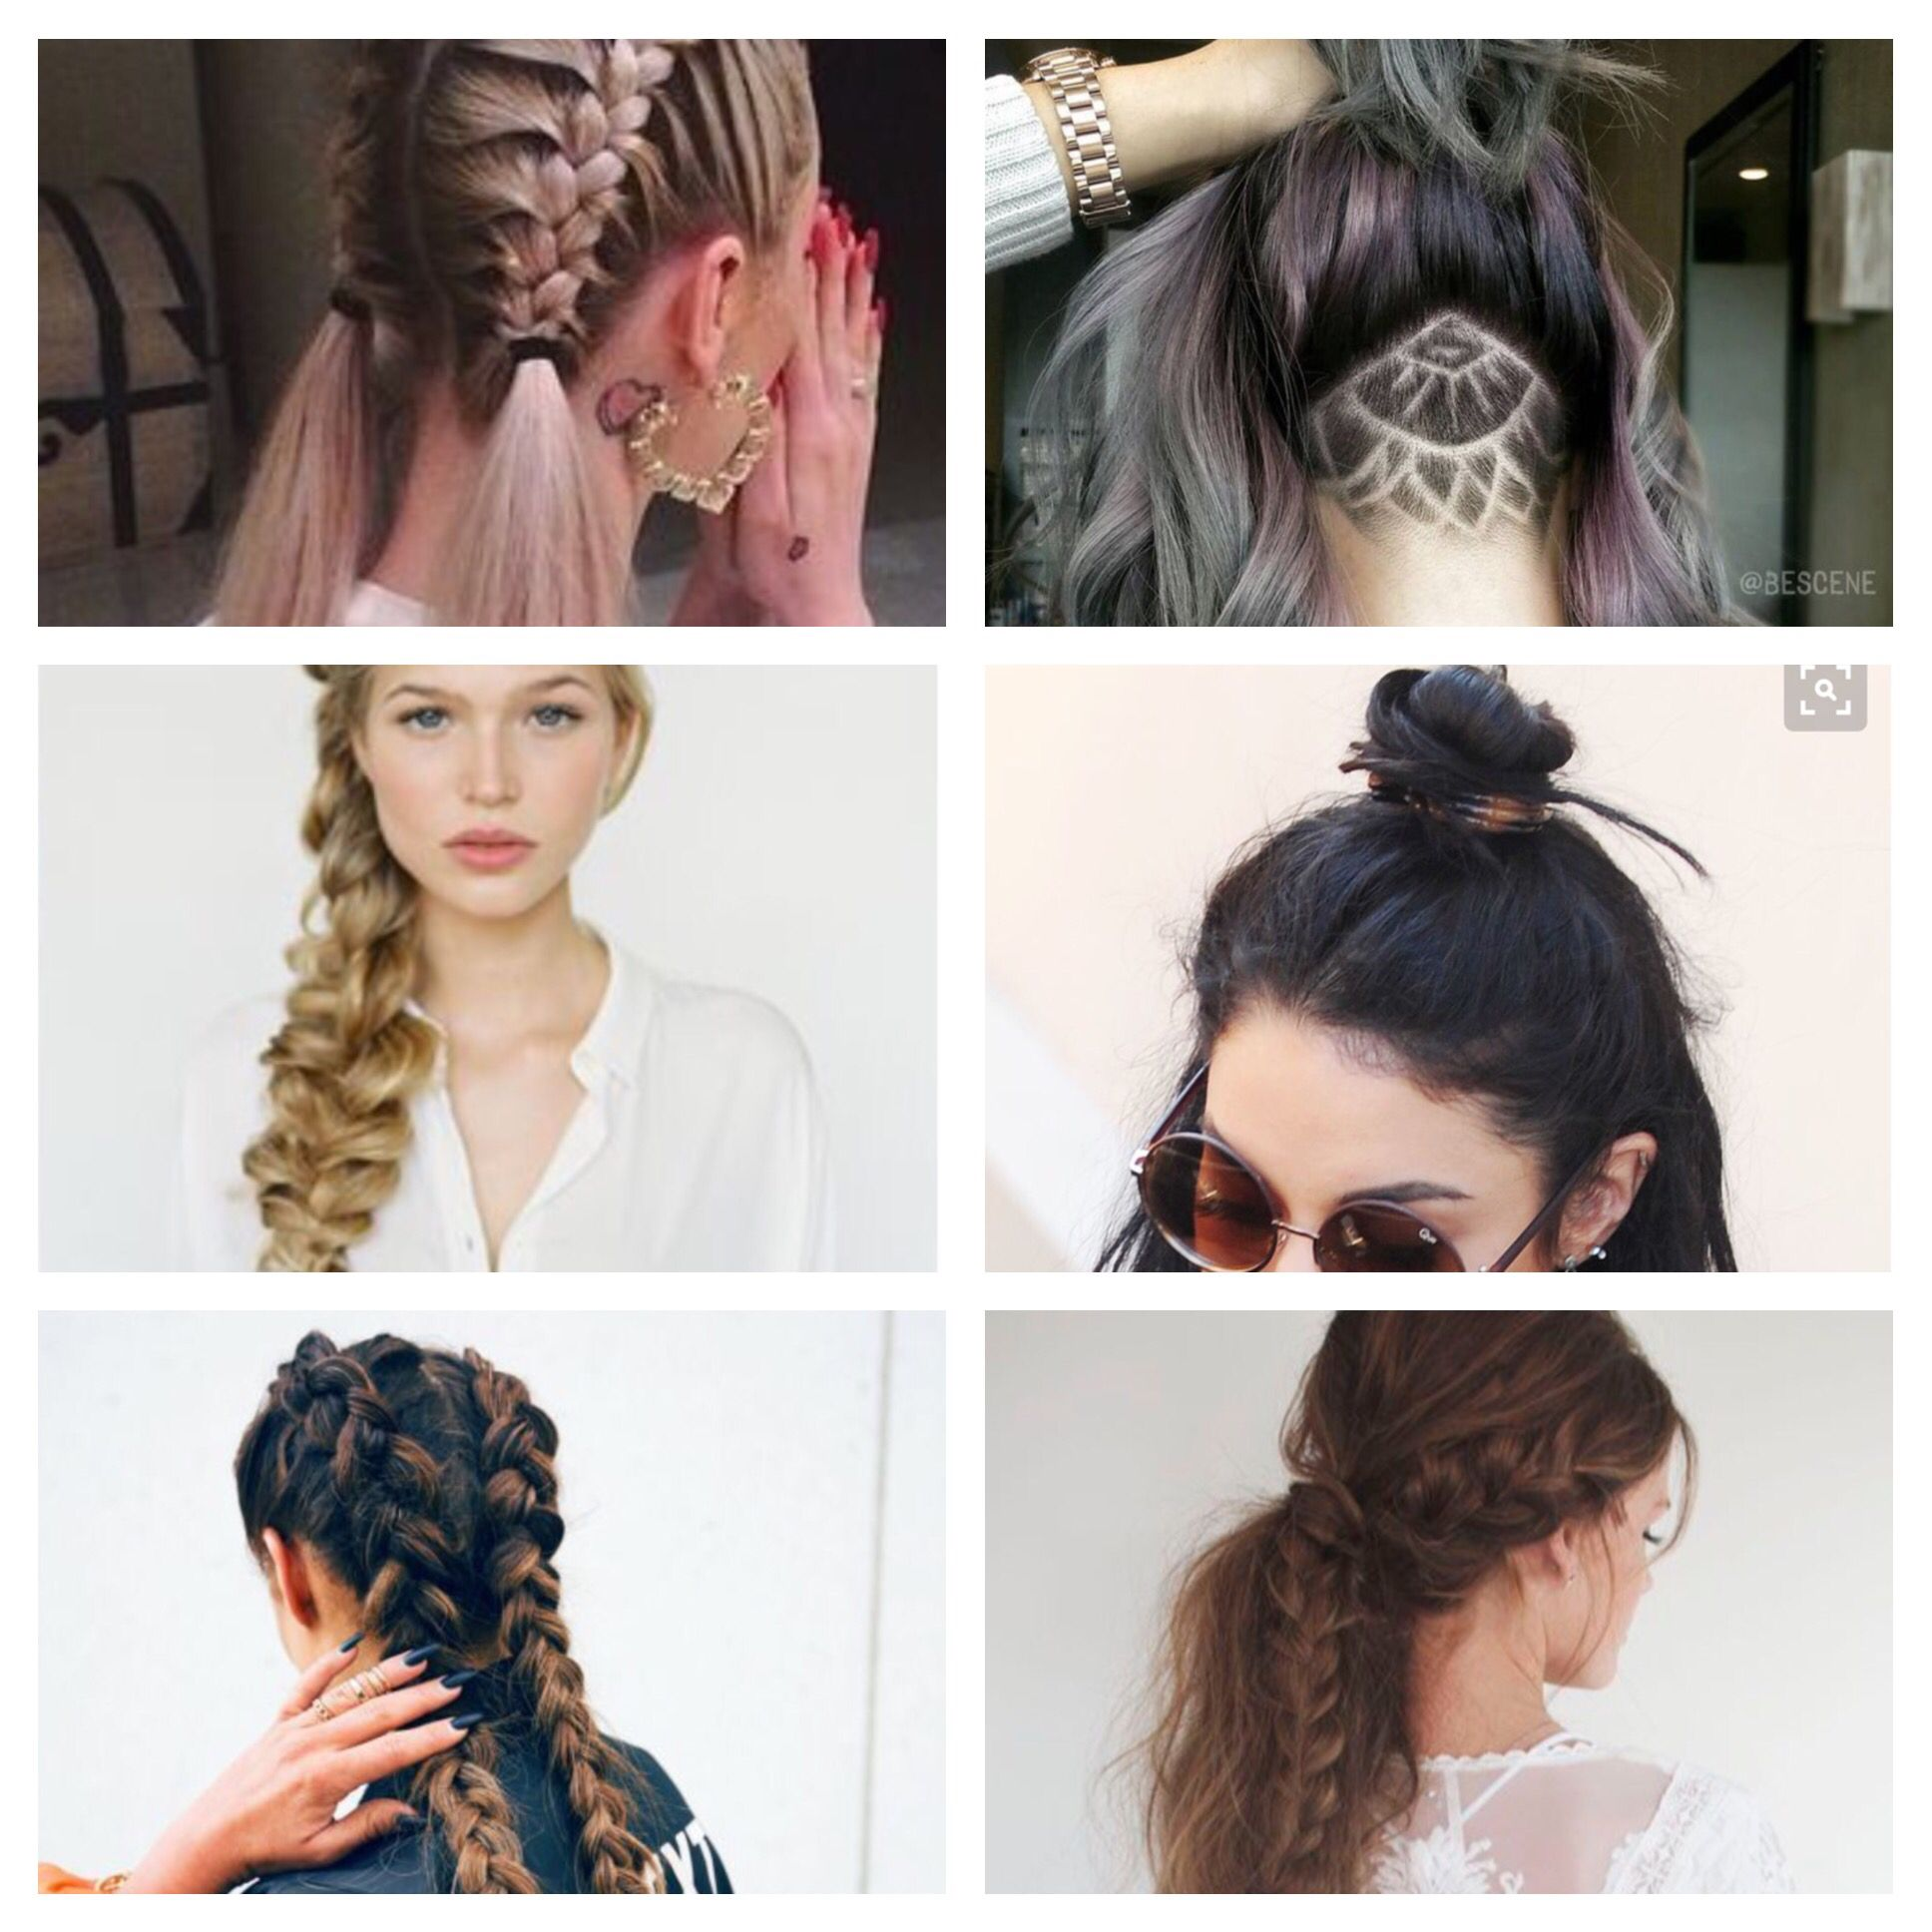 Try On Hairstyles Alluring 10 Hairstyles To Try This Summer Checkout More Images On The Blog